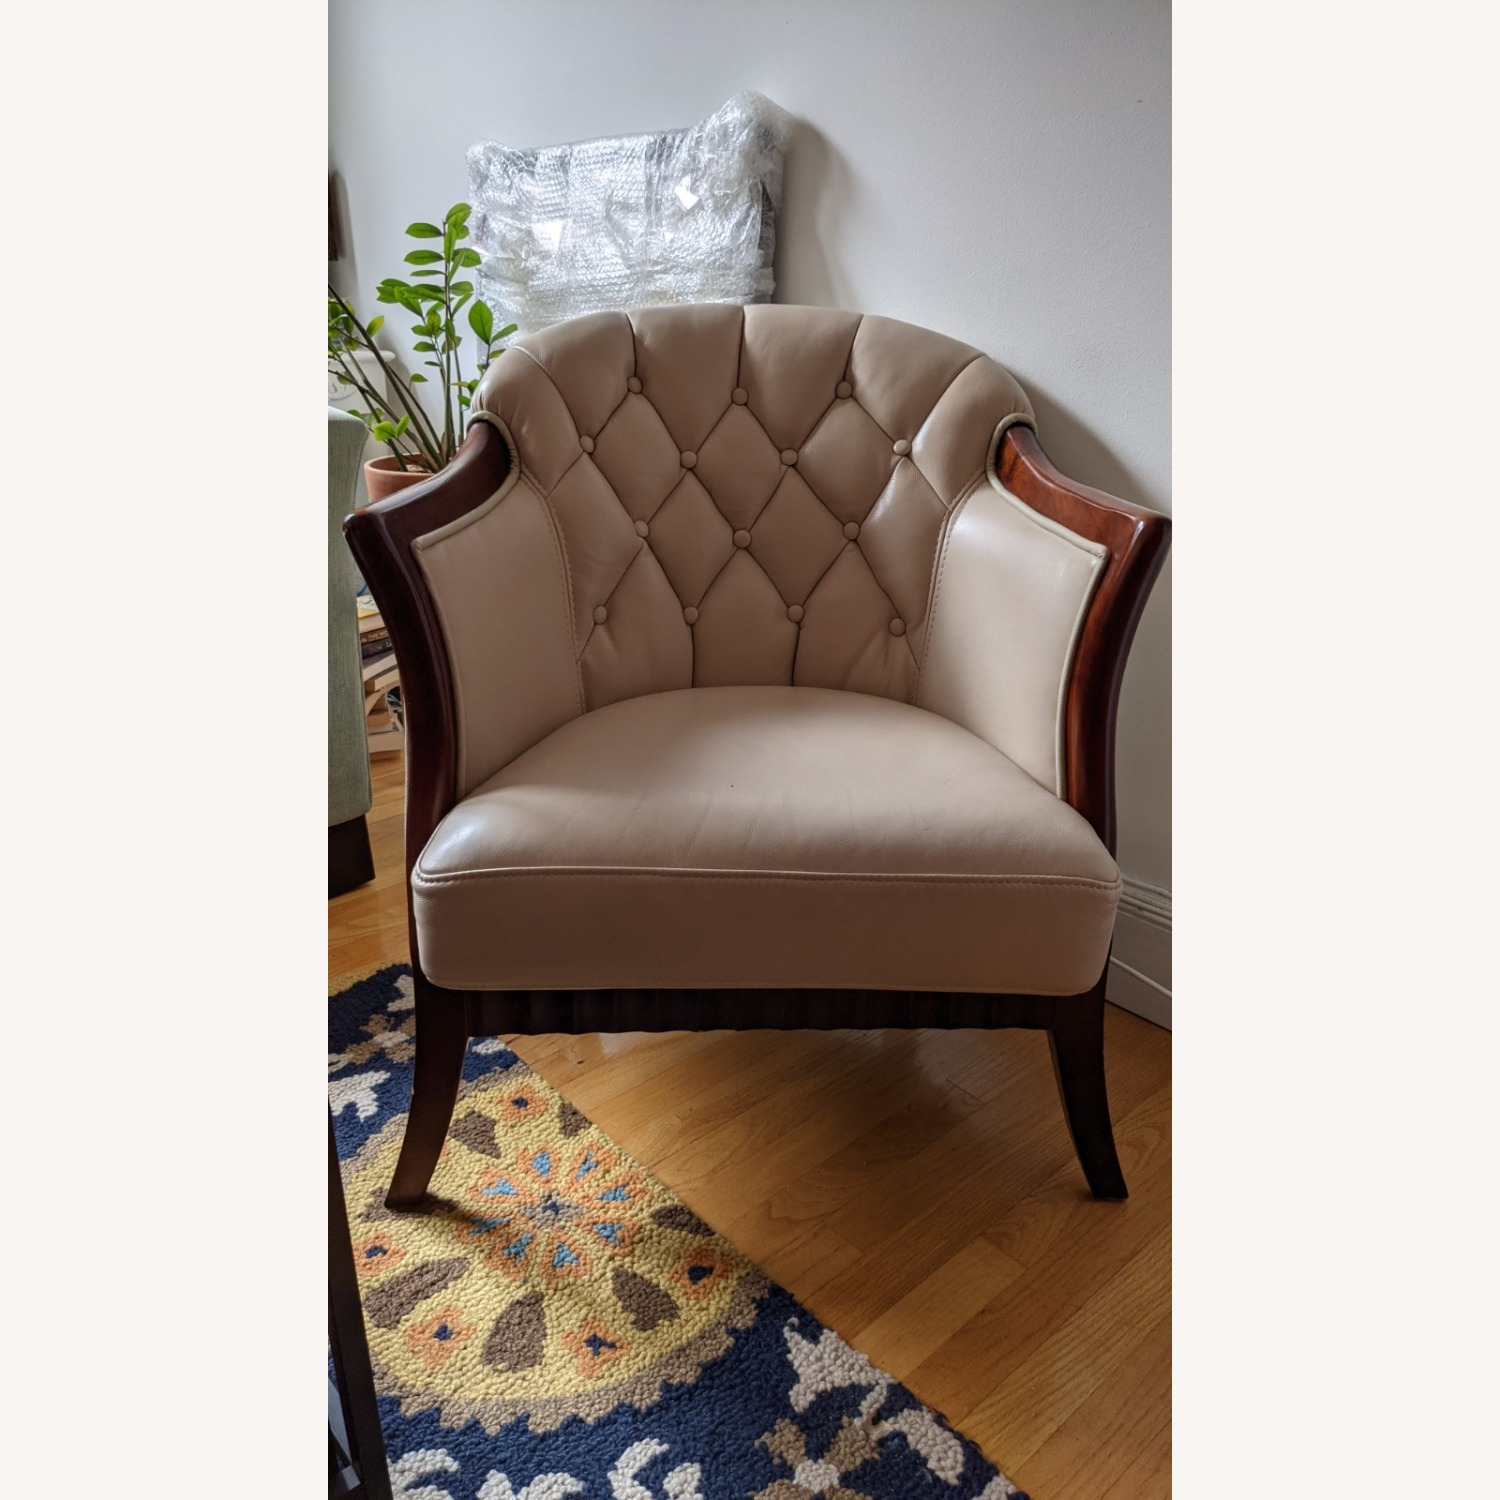 Taupe Tufted Leather Arm Chair Set - image-1